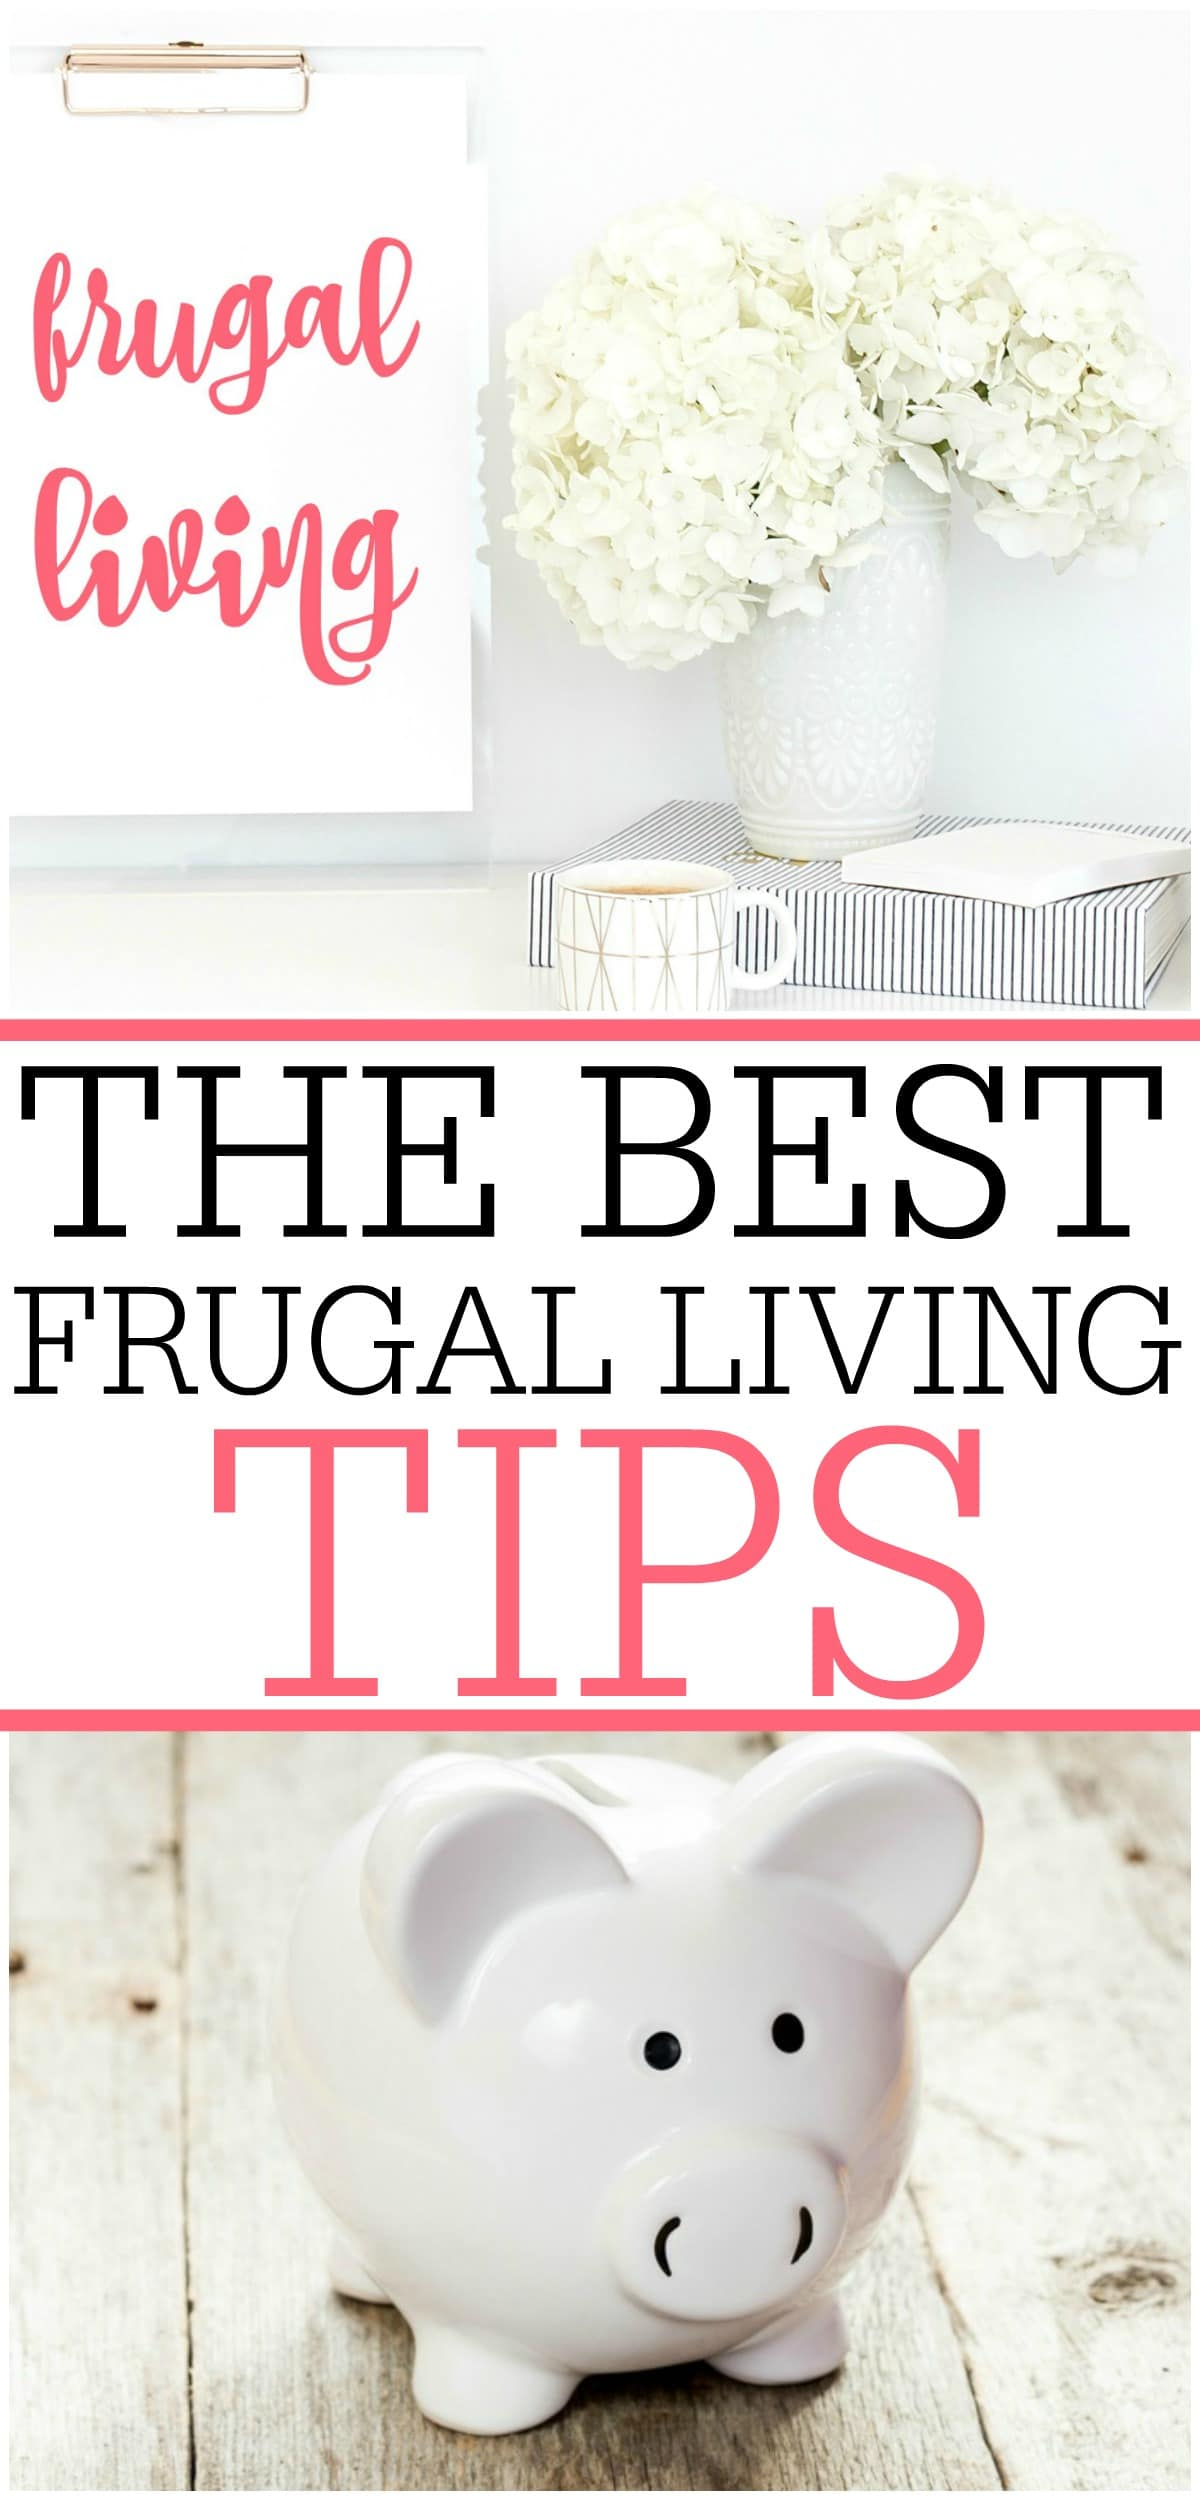 Trying to save money? You can save more money with these awesome frugal living tips. Check out the best frugal living tips to really make the most of your money. #frugalliving #savemoney